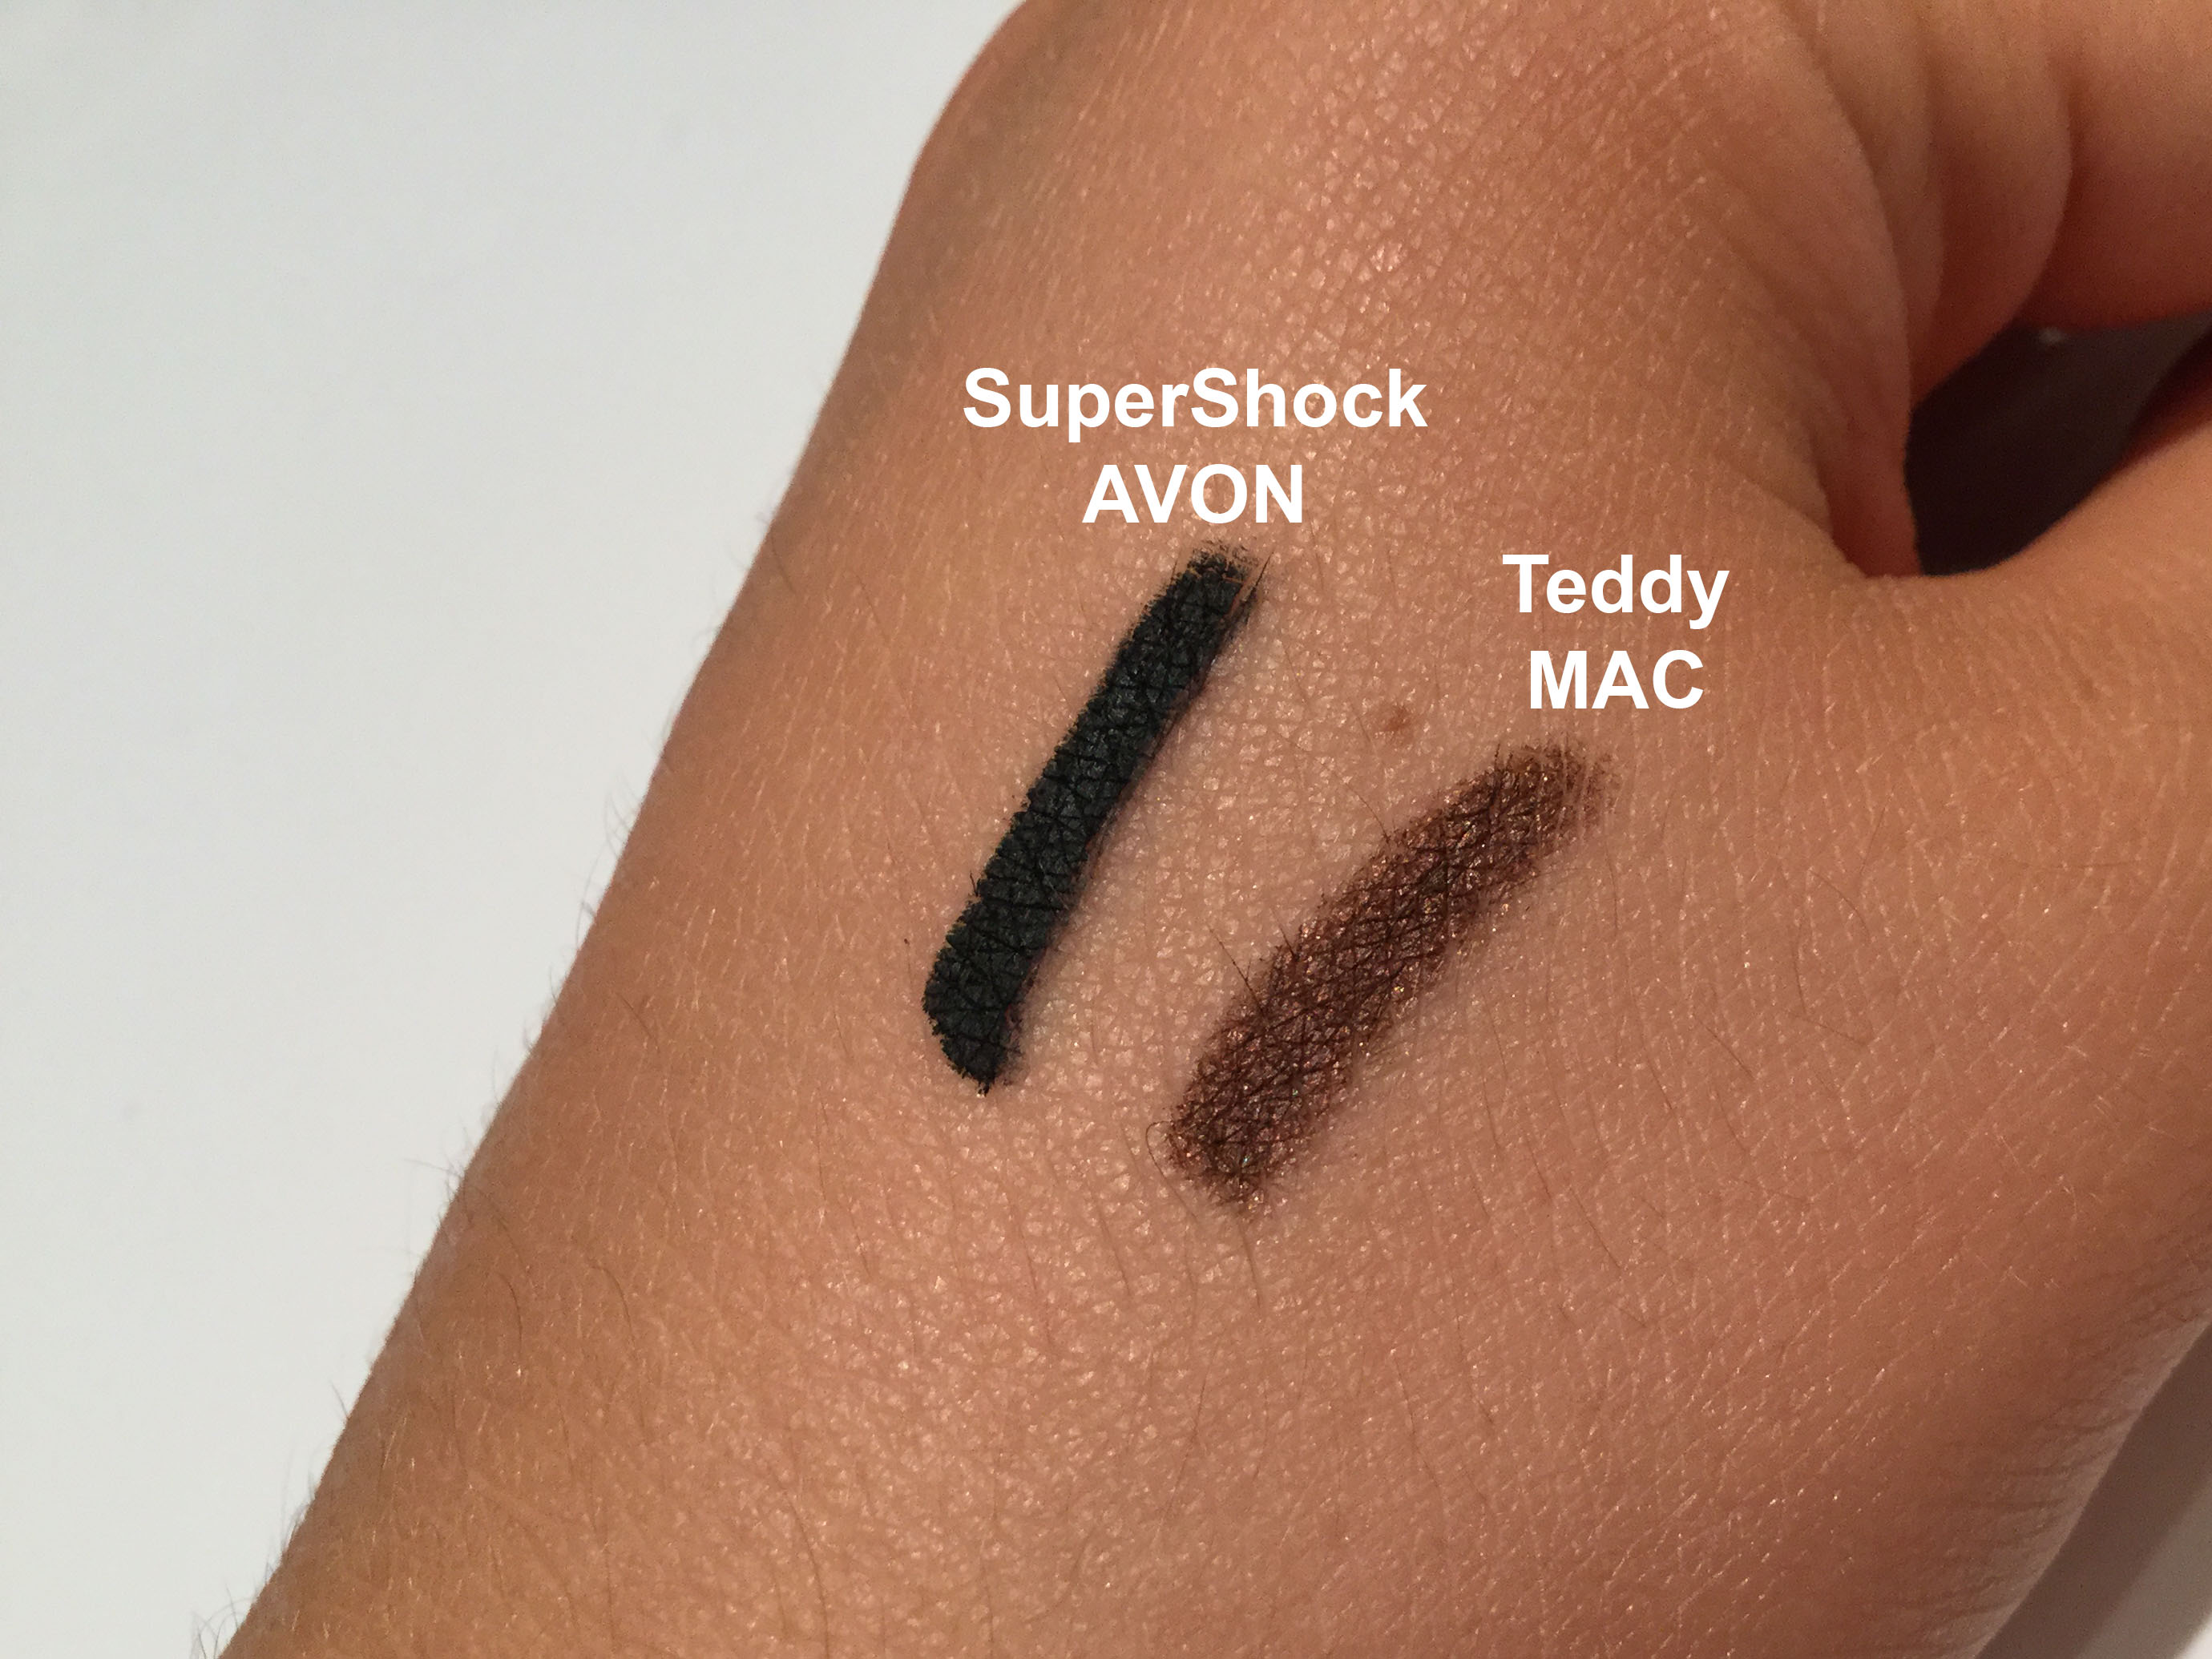 Supershock de Avon y Teddy de MAC.